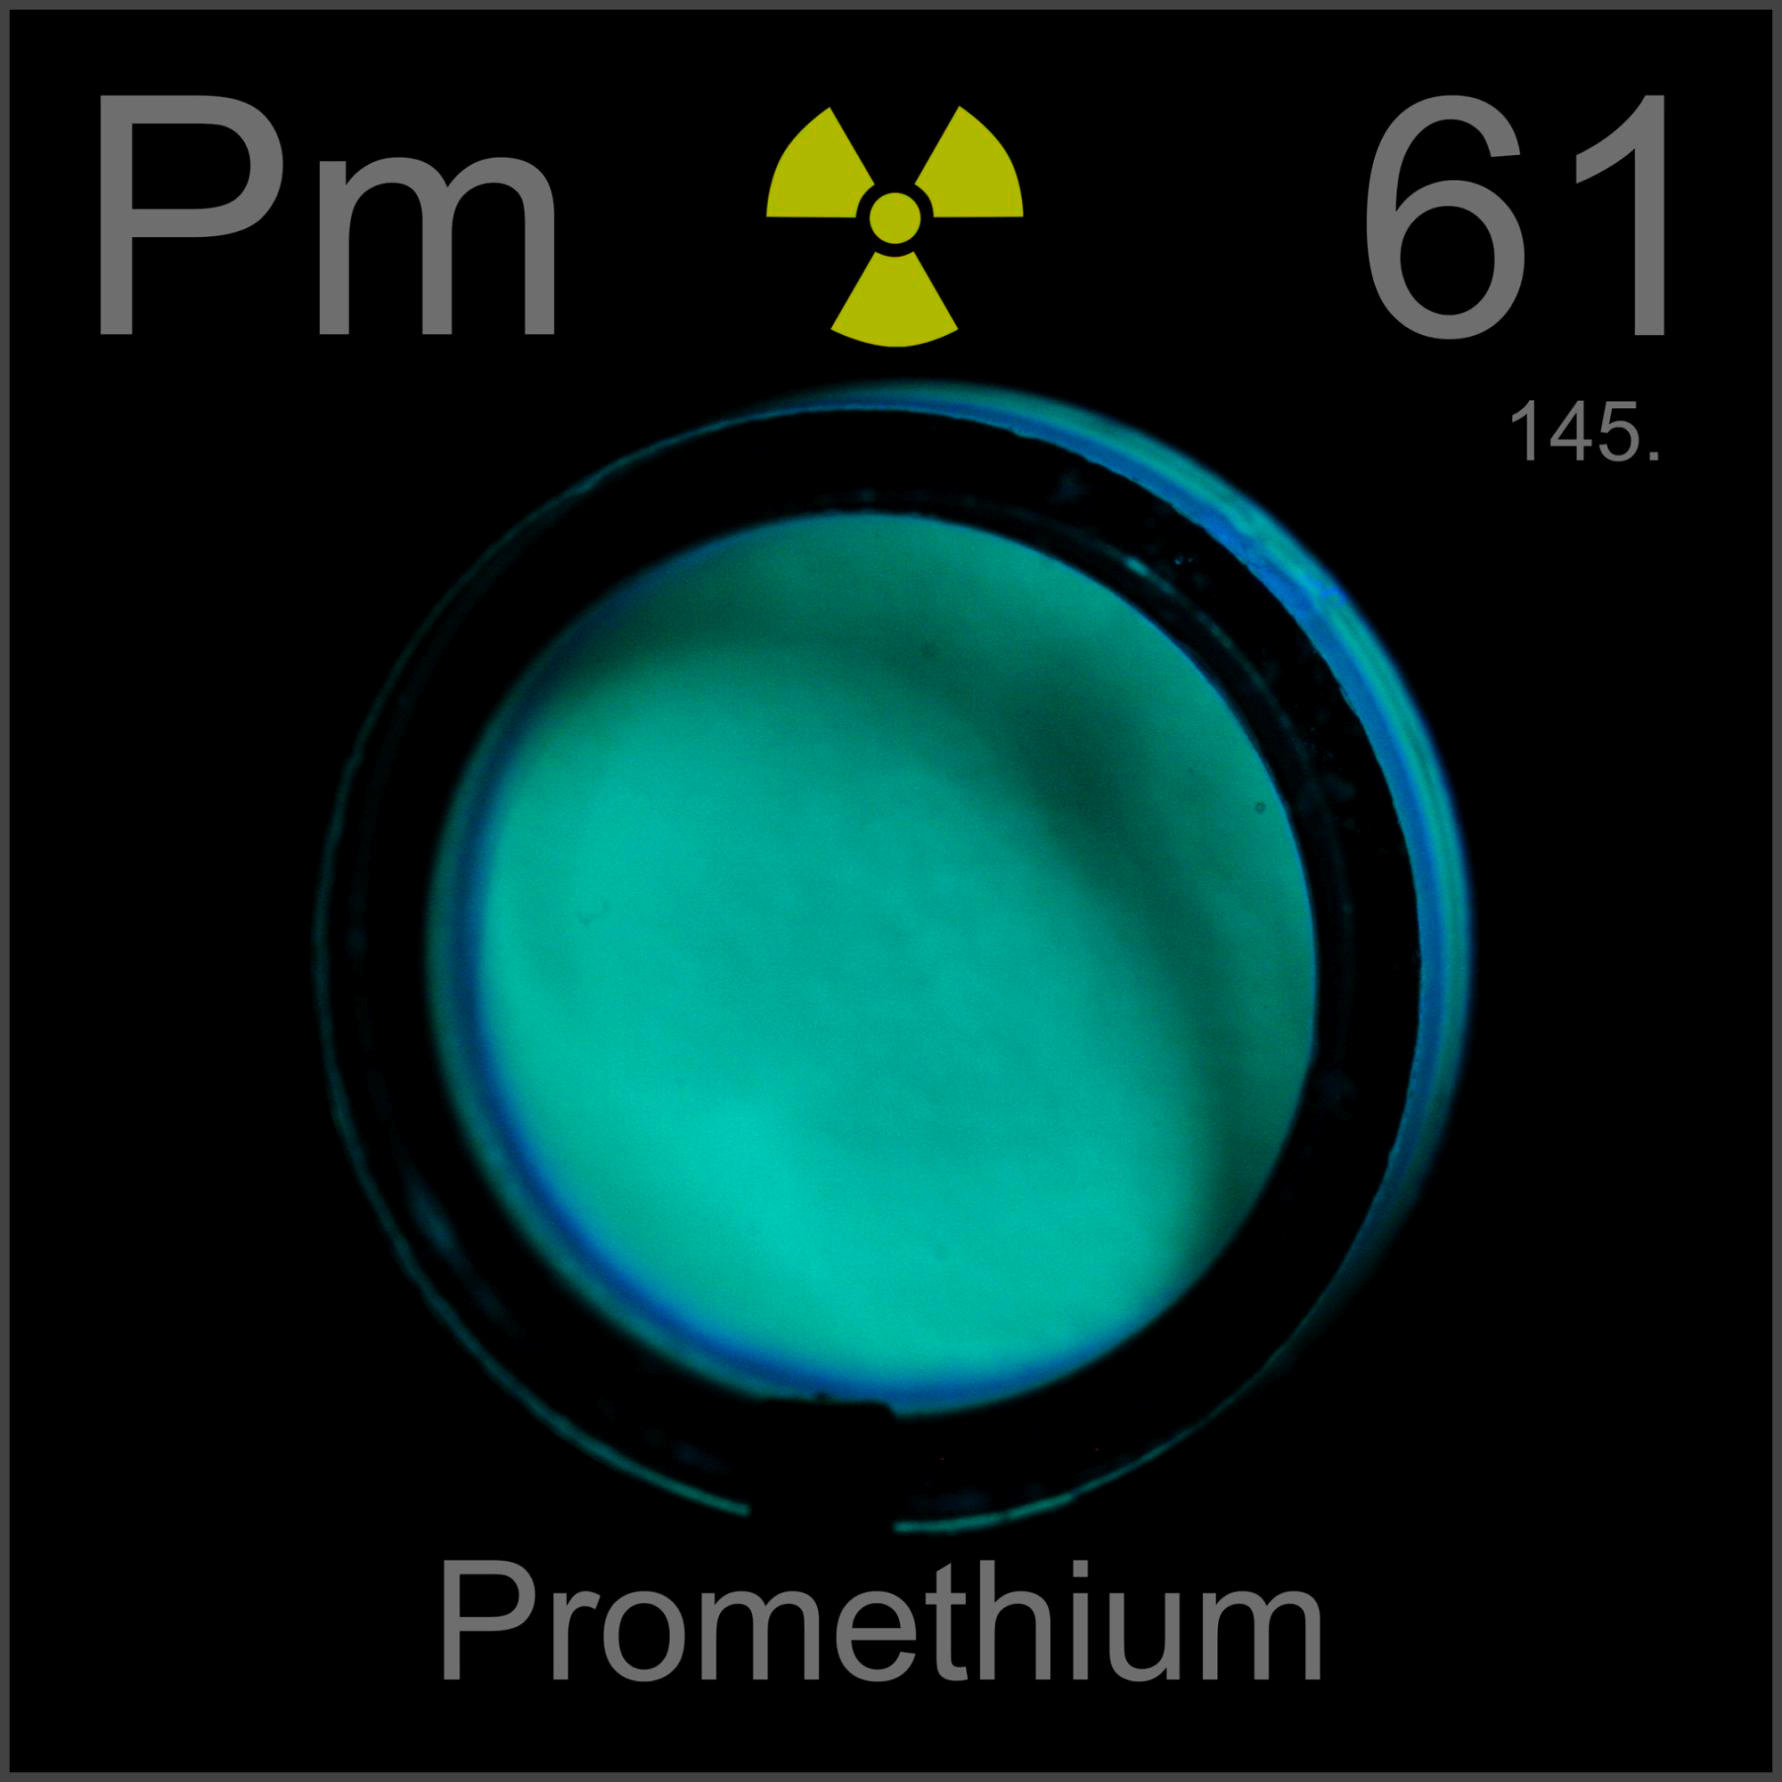 the element promethium 'finally in 1945, scientists isolated promethium from uranium fission products purified by ion-exchange chromatography' 'in fact, the elements with atomic numbers 43, 61, and 85 (technetium, promethium, and astatine, respectively) were unknown on earth until some of their radioactive isotopes had been produced synthetically.